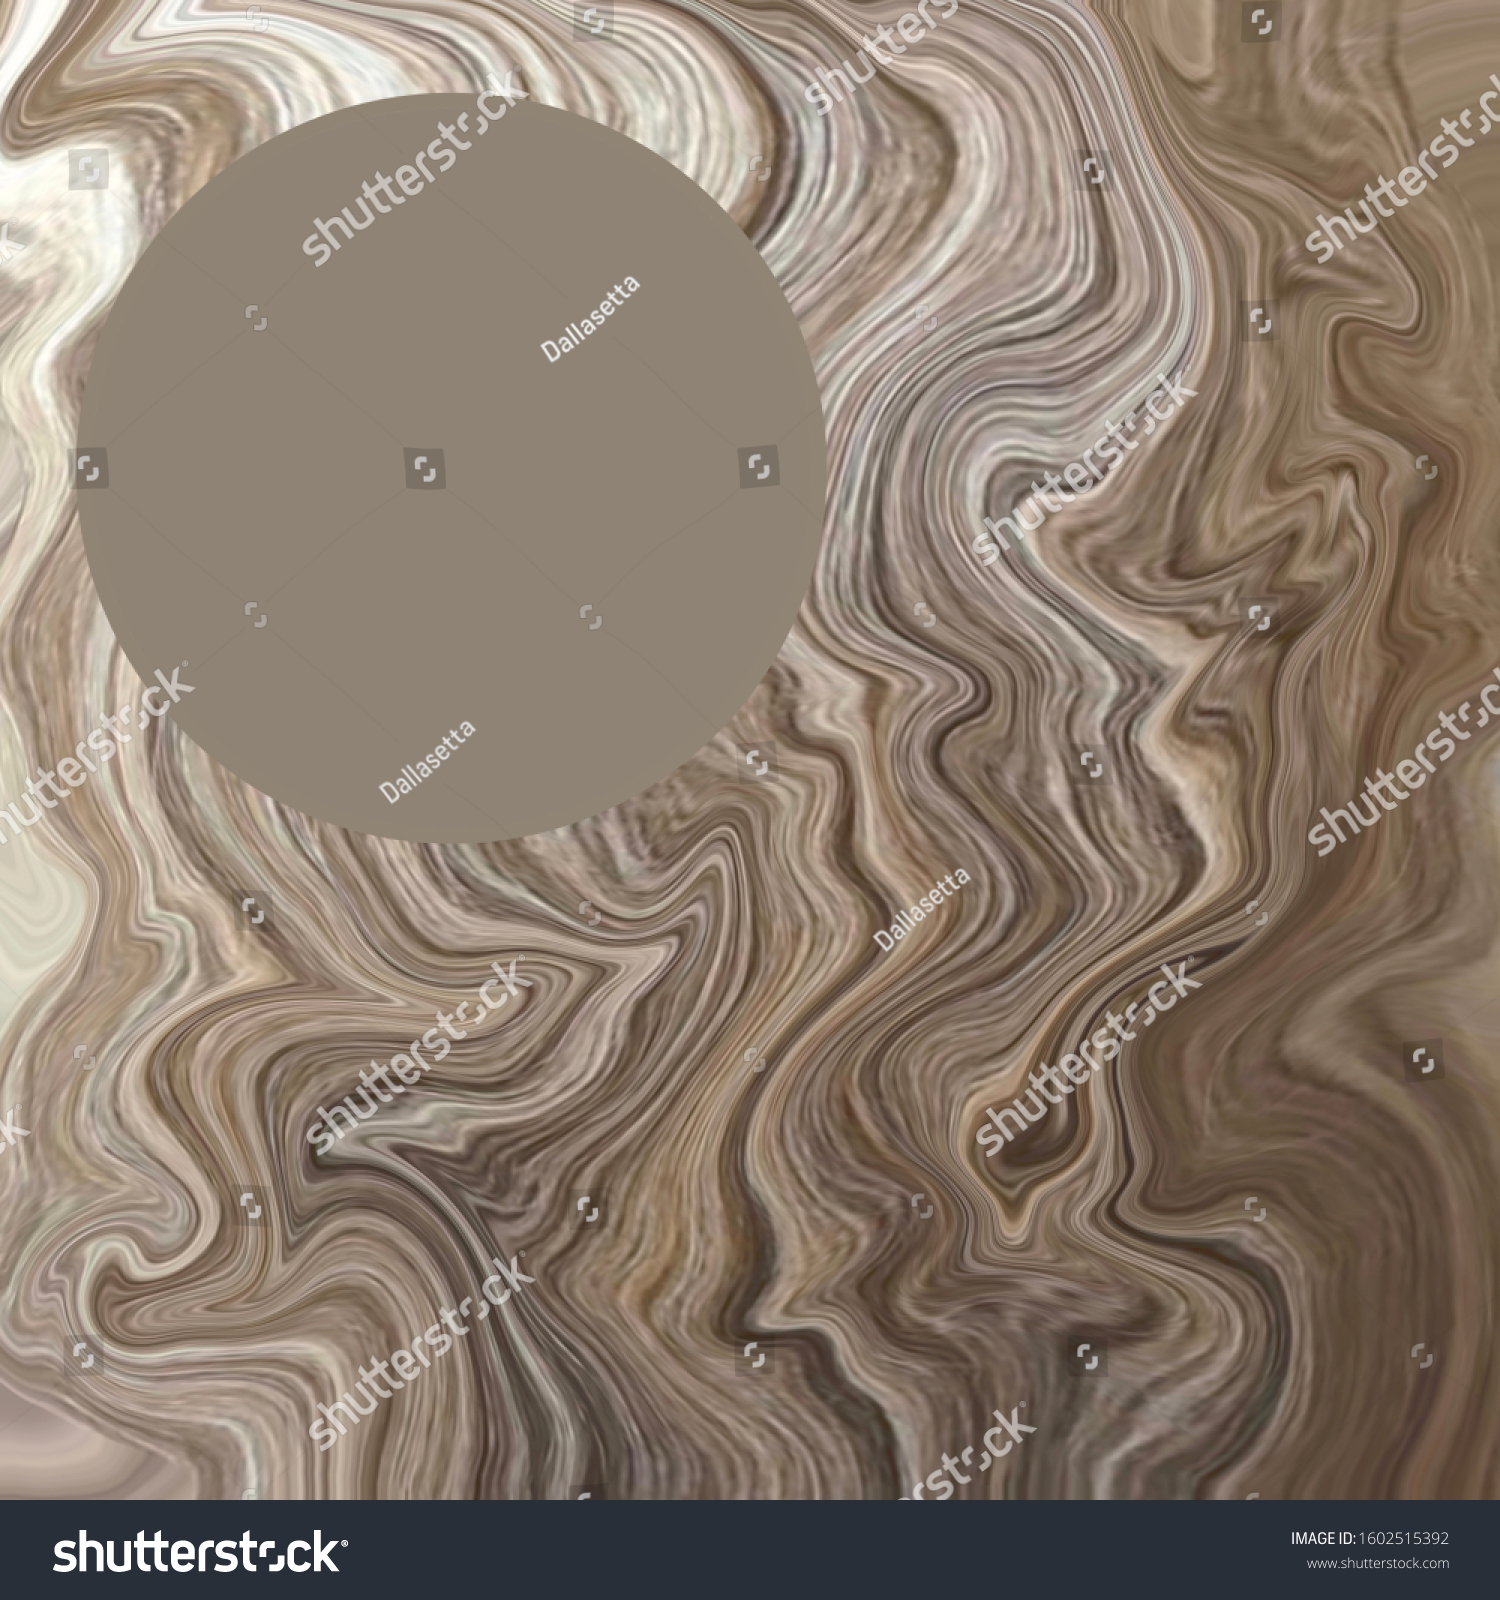 Shades Of Taupe Brown Beige Blurred Marbleised Illustration Background Layout With Solid Filled Blank Round Circle